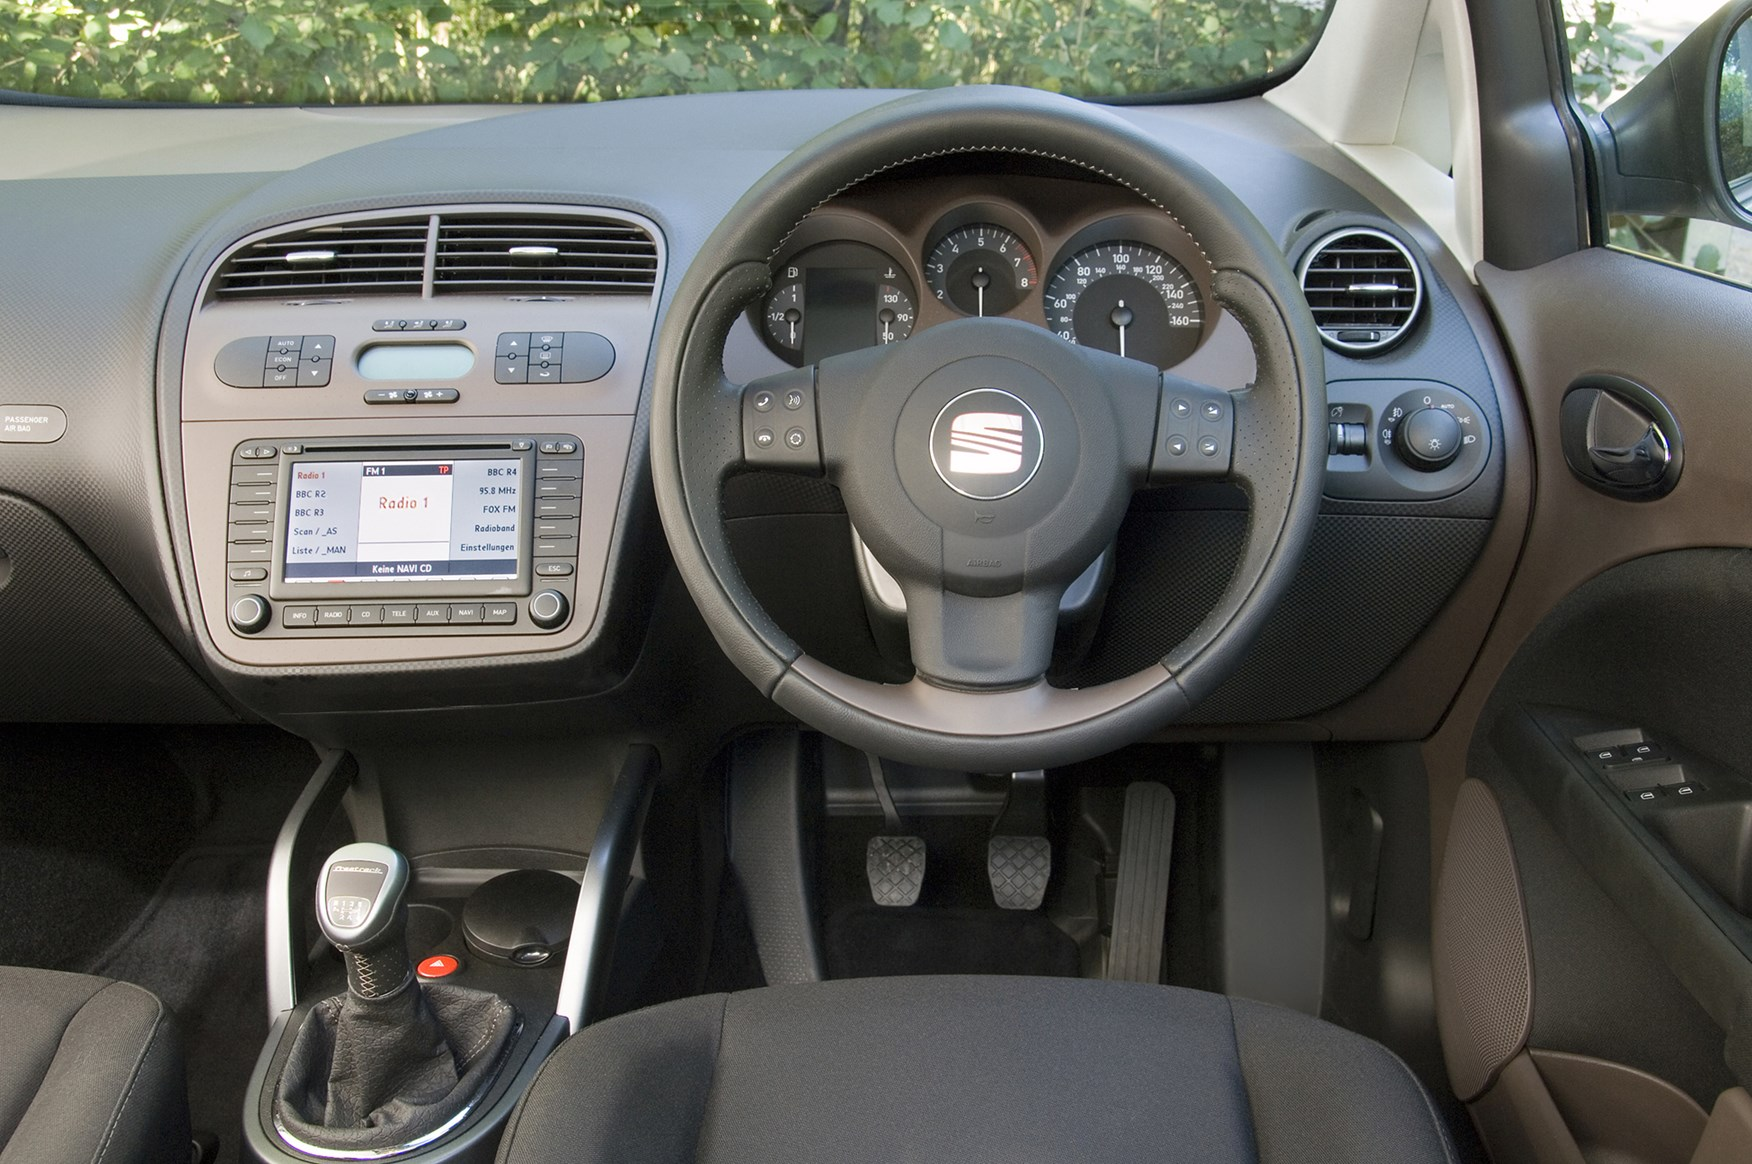 SEAT Altea Freetrack 4 (2007 - 2009) Driving & Performance | Parkers